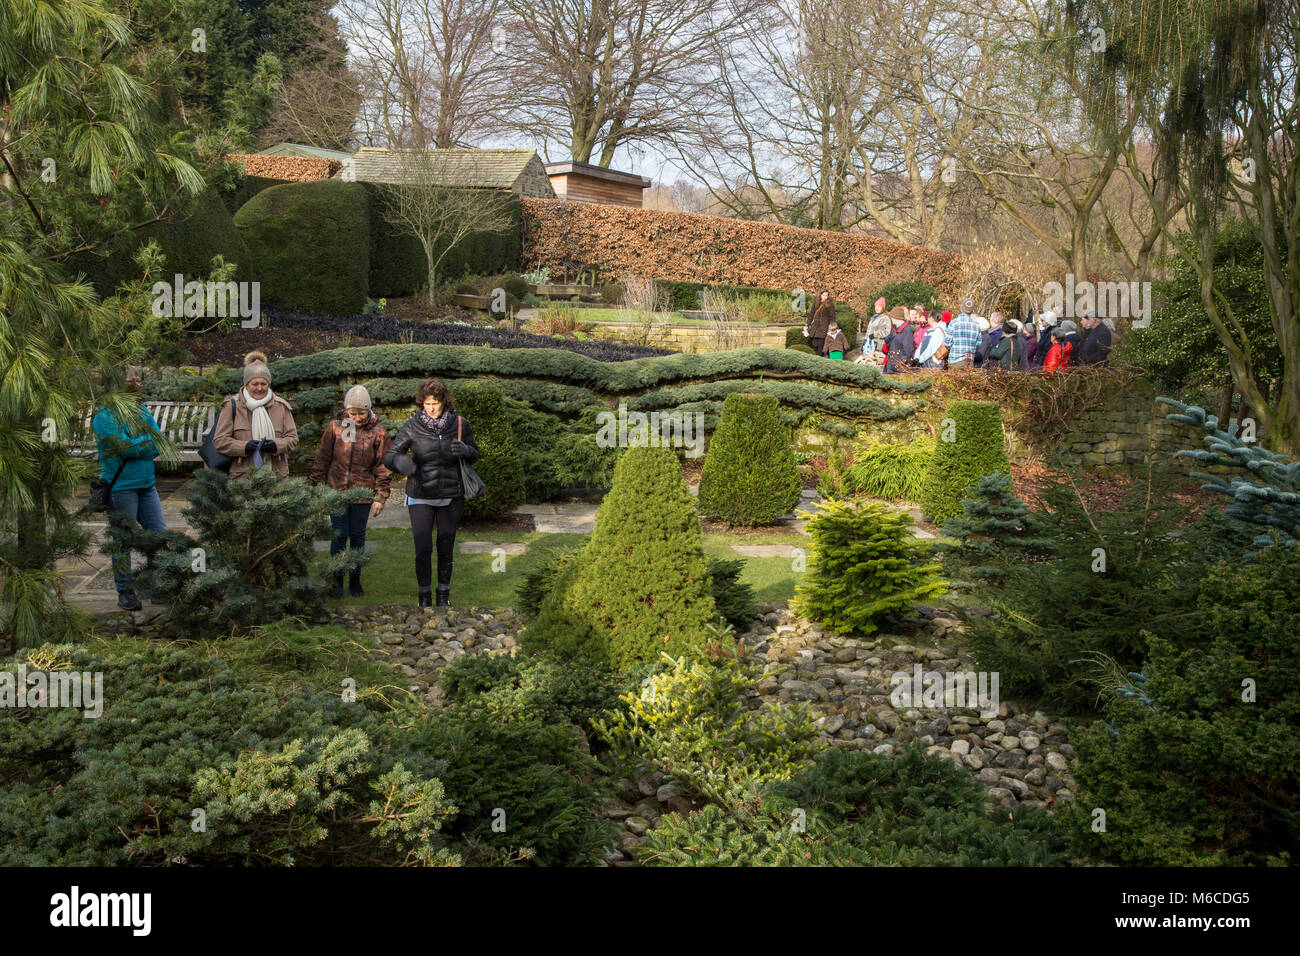 Visitors to York Gate Garden, Adel, Leeds - Stock Image